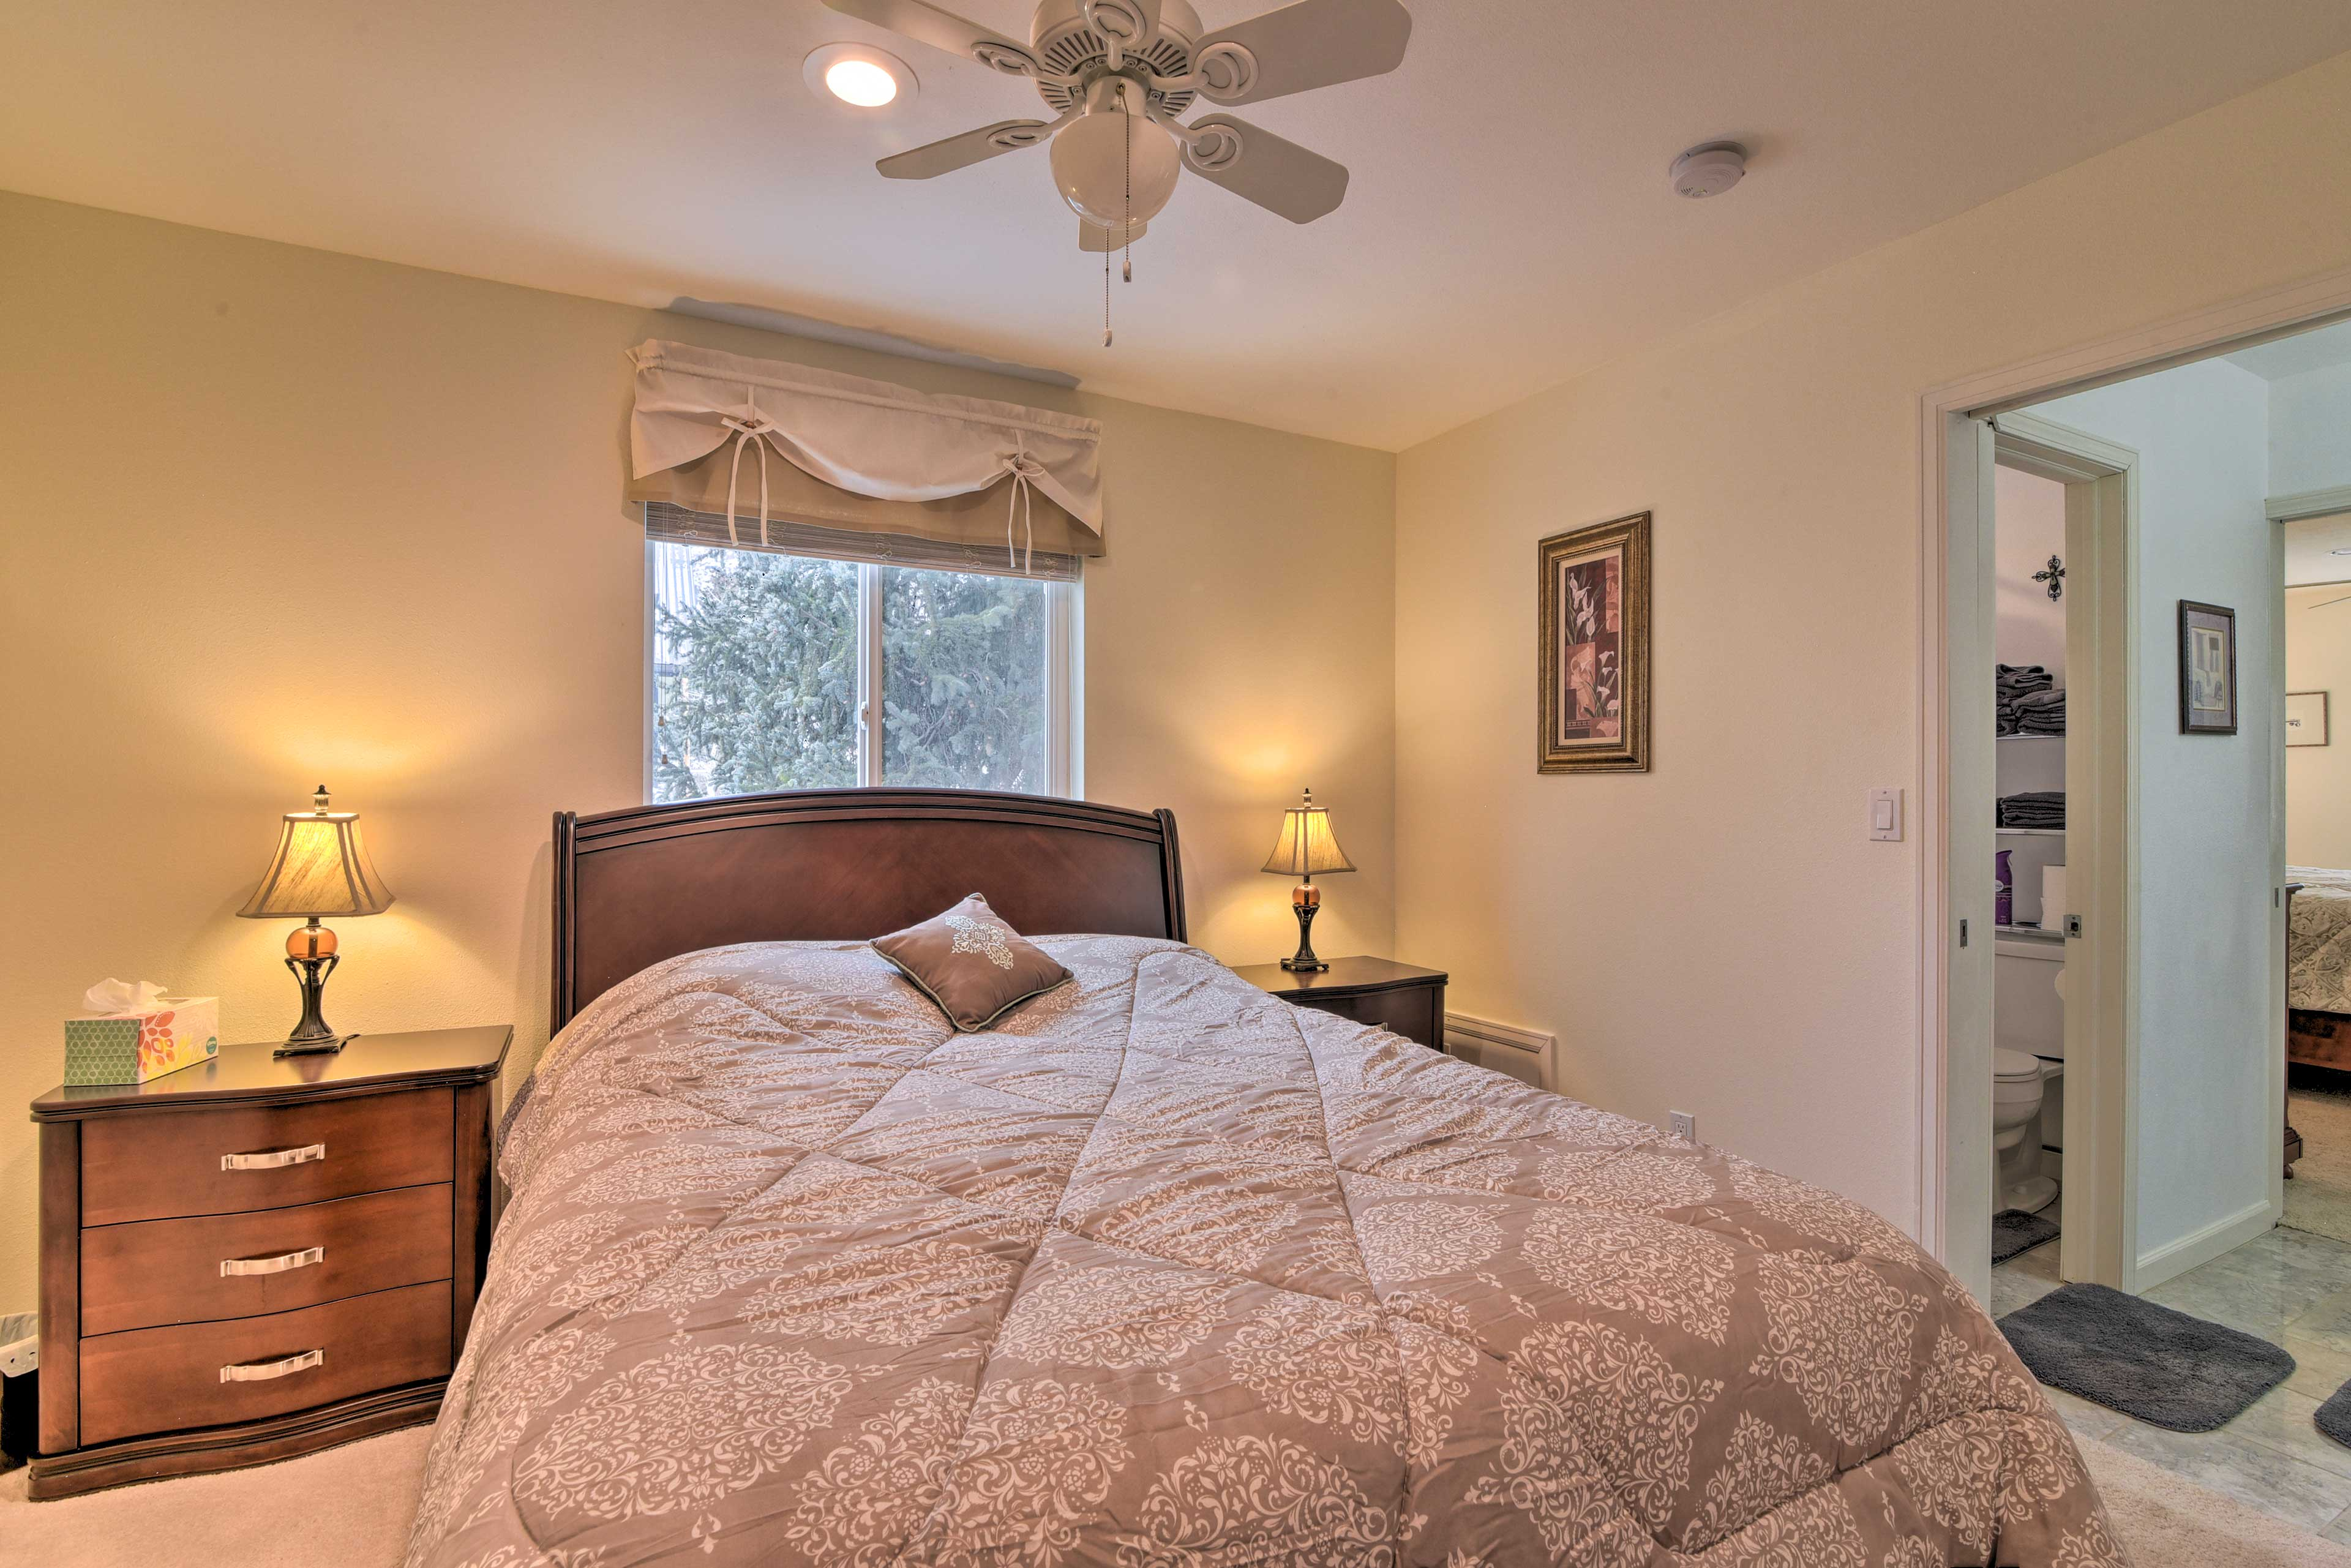 There is a queen bed in this bedroom.